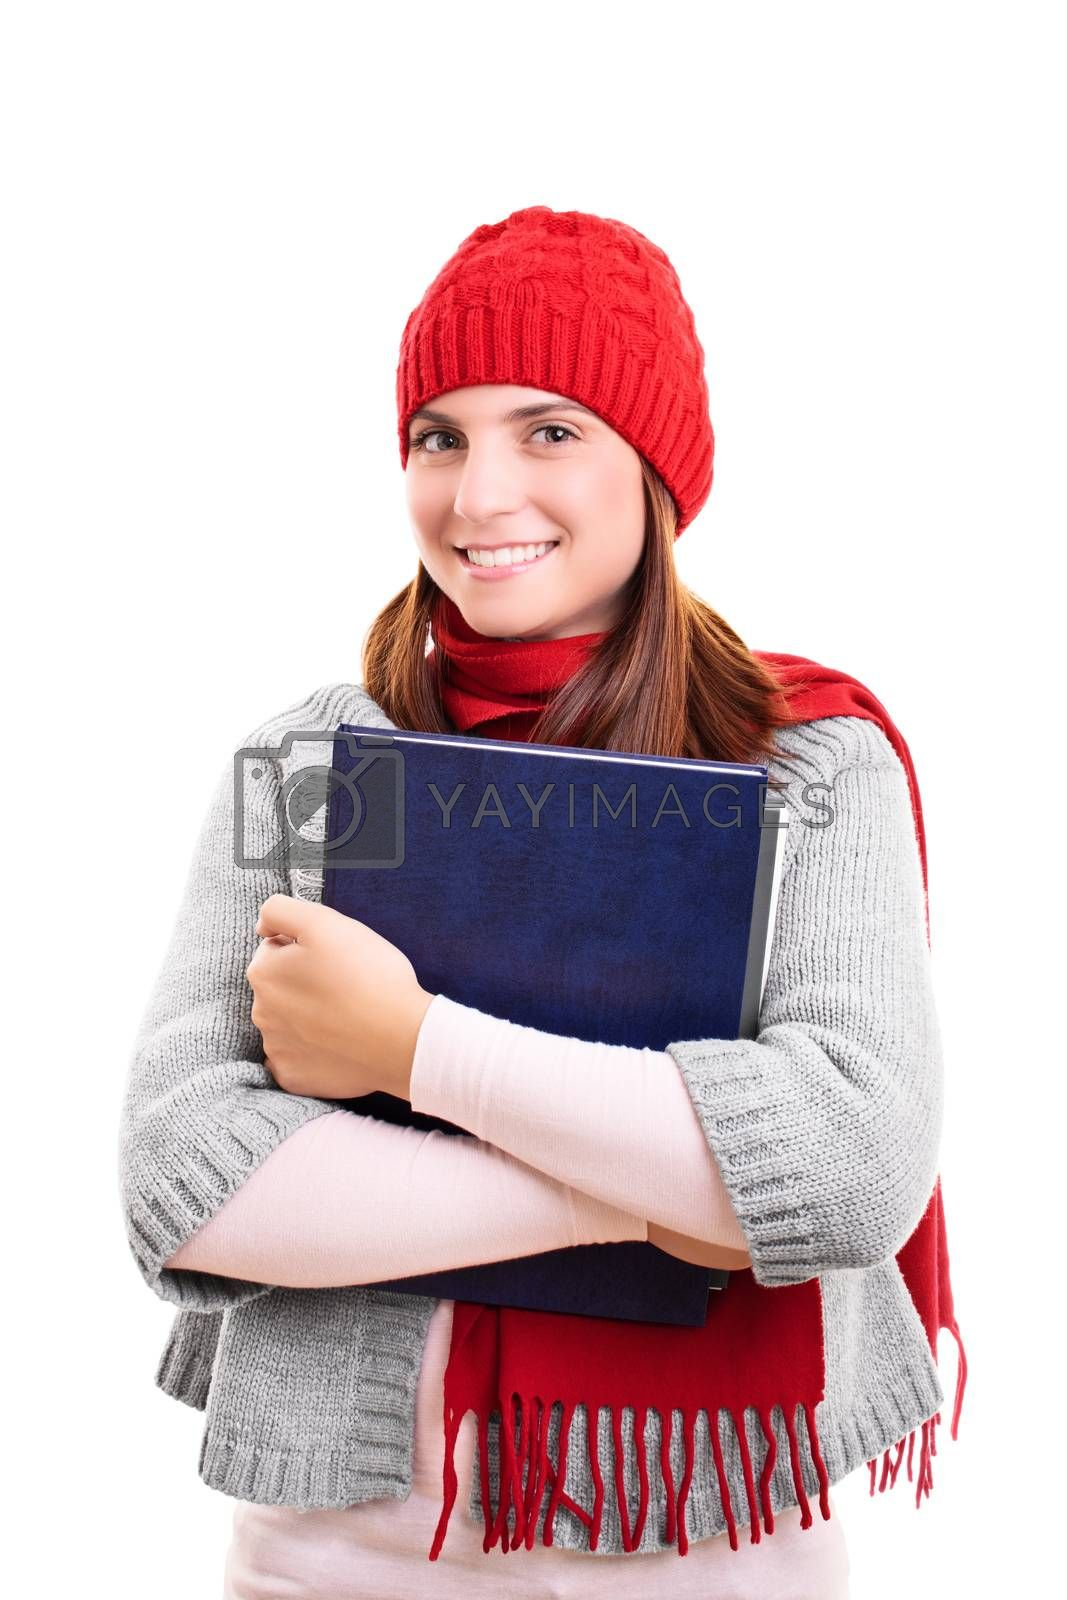 Portrait of a beautiful smiling female student in winter clothes holding a book, isolated on white background. I'm ready for winter exam season.